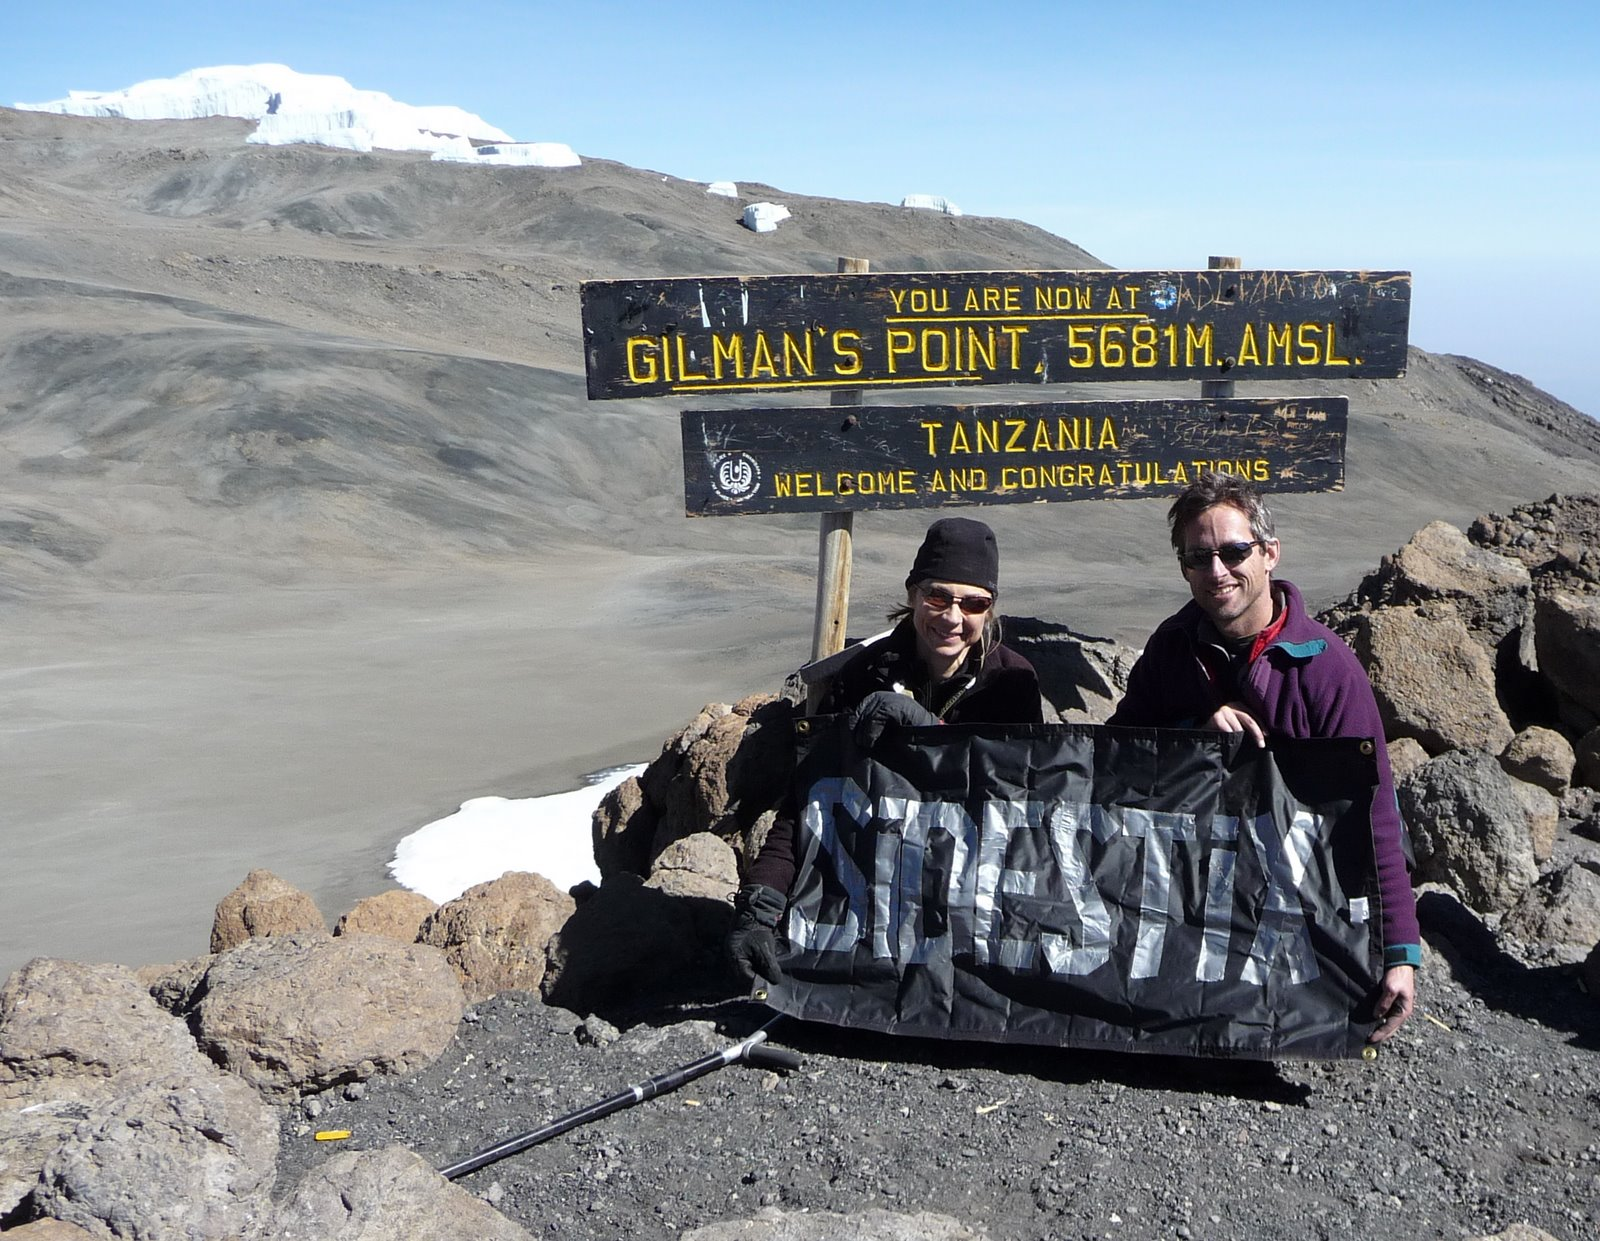 Gilman's Point, Mt. Kilimanjaro, SideStix blog